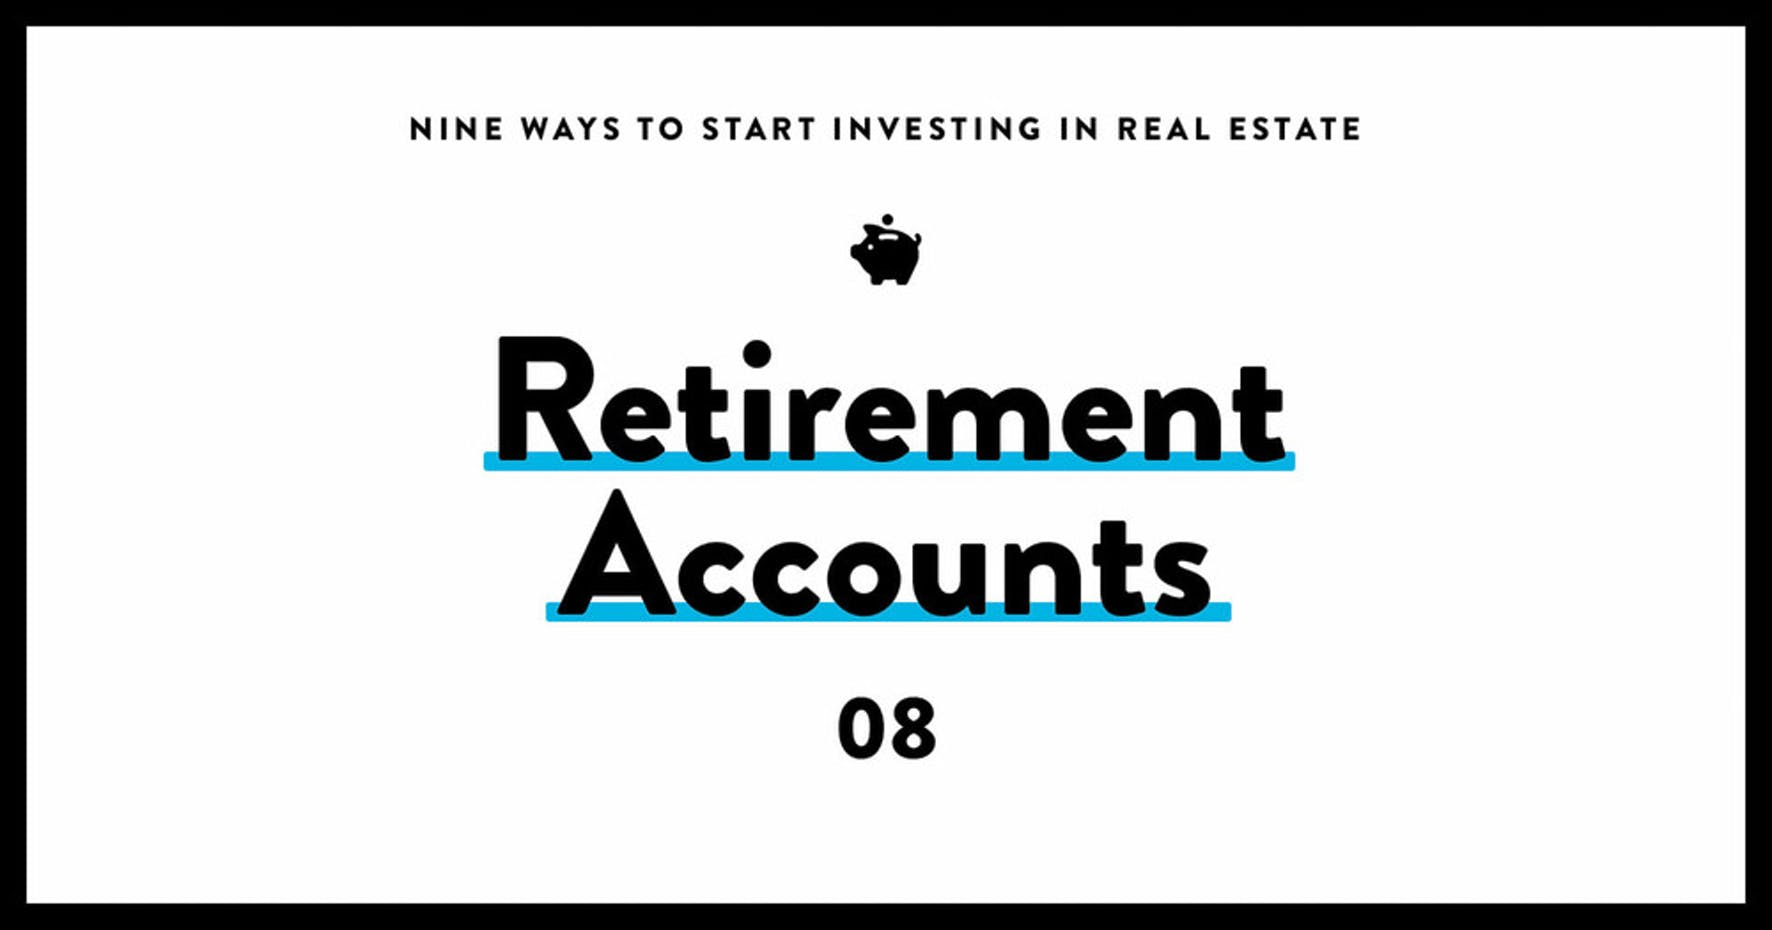 real estate investing for beginners 08 retirement accounts